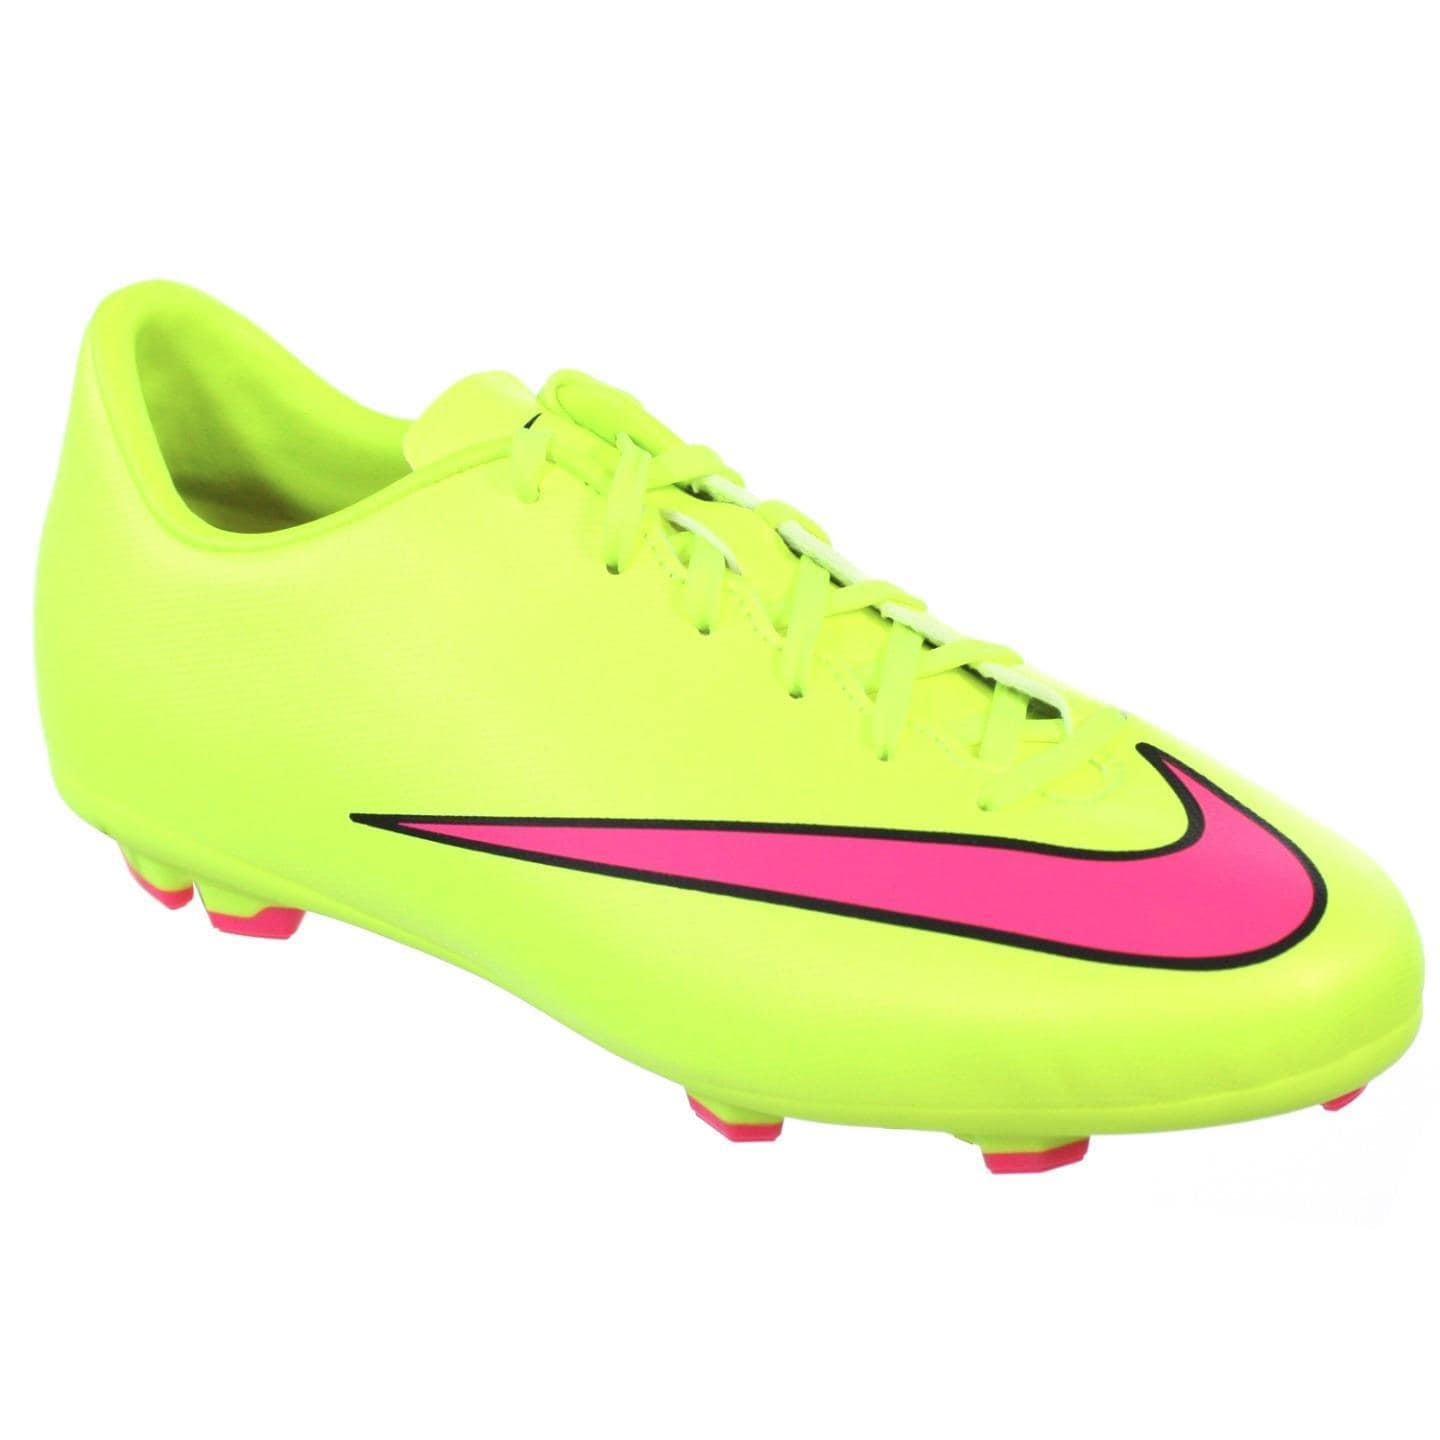 factory authentic 0d735 3fe9b Nike Jr Youth Mercurial Victory Volt FG 3.5 Y Pink/Black Molded Soccer  Cleats